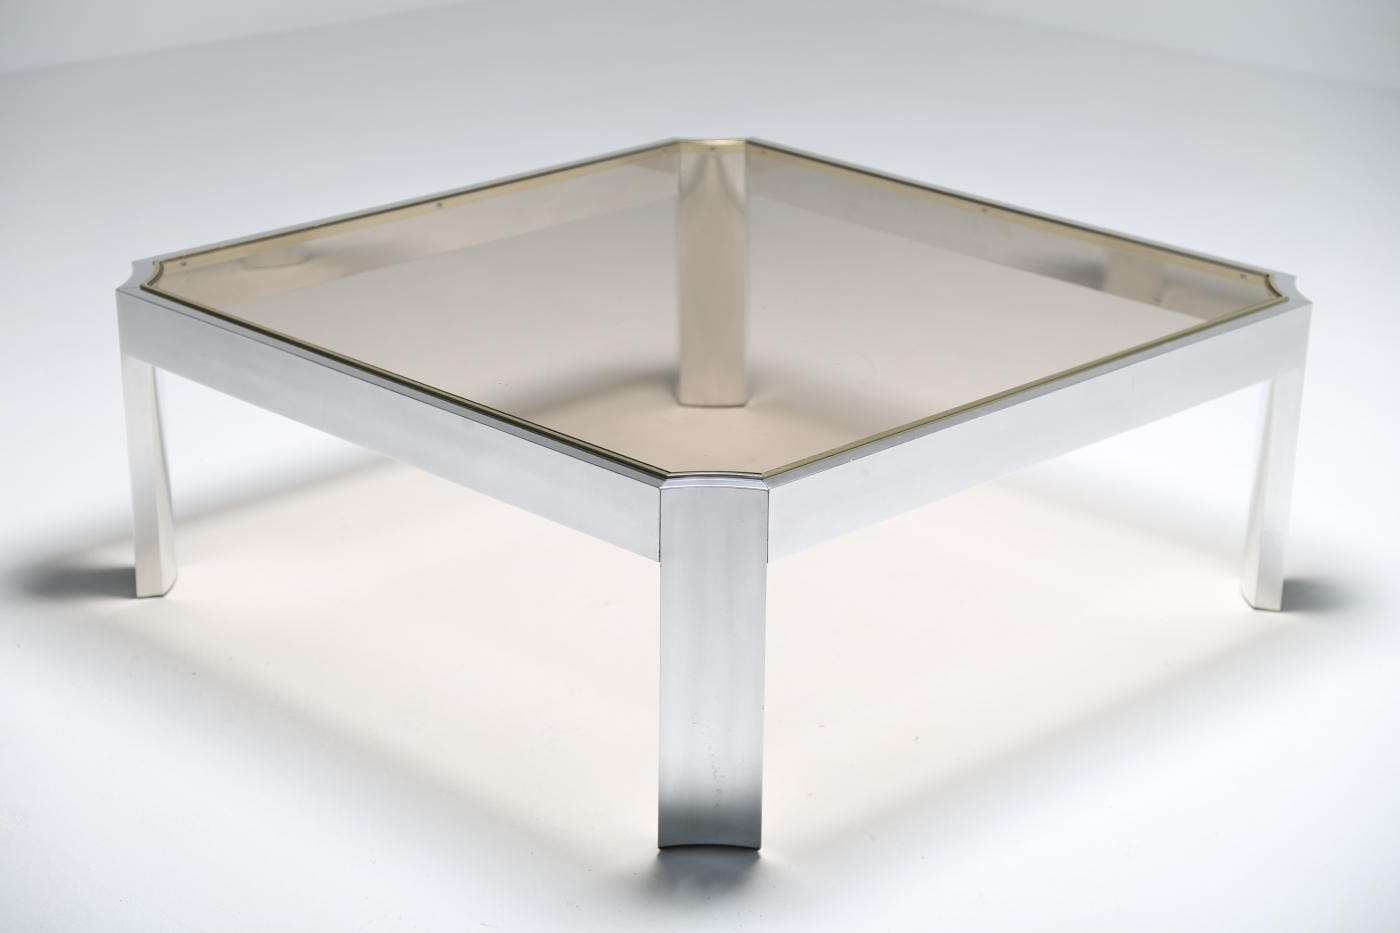 2017 Aluminium Coffee Tables Regarding Mid Century Glass Coffee Table With Aluminium Base For Sale At Pamono (View 7 of 20)